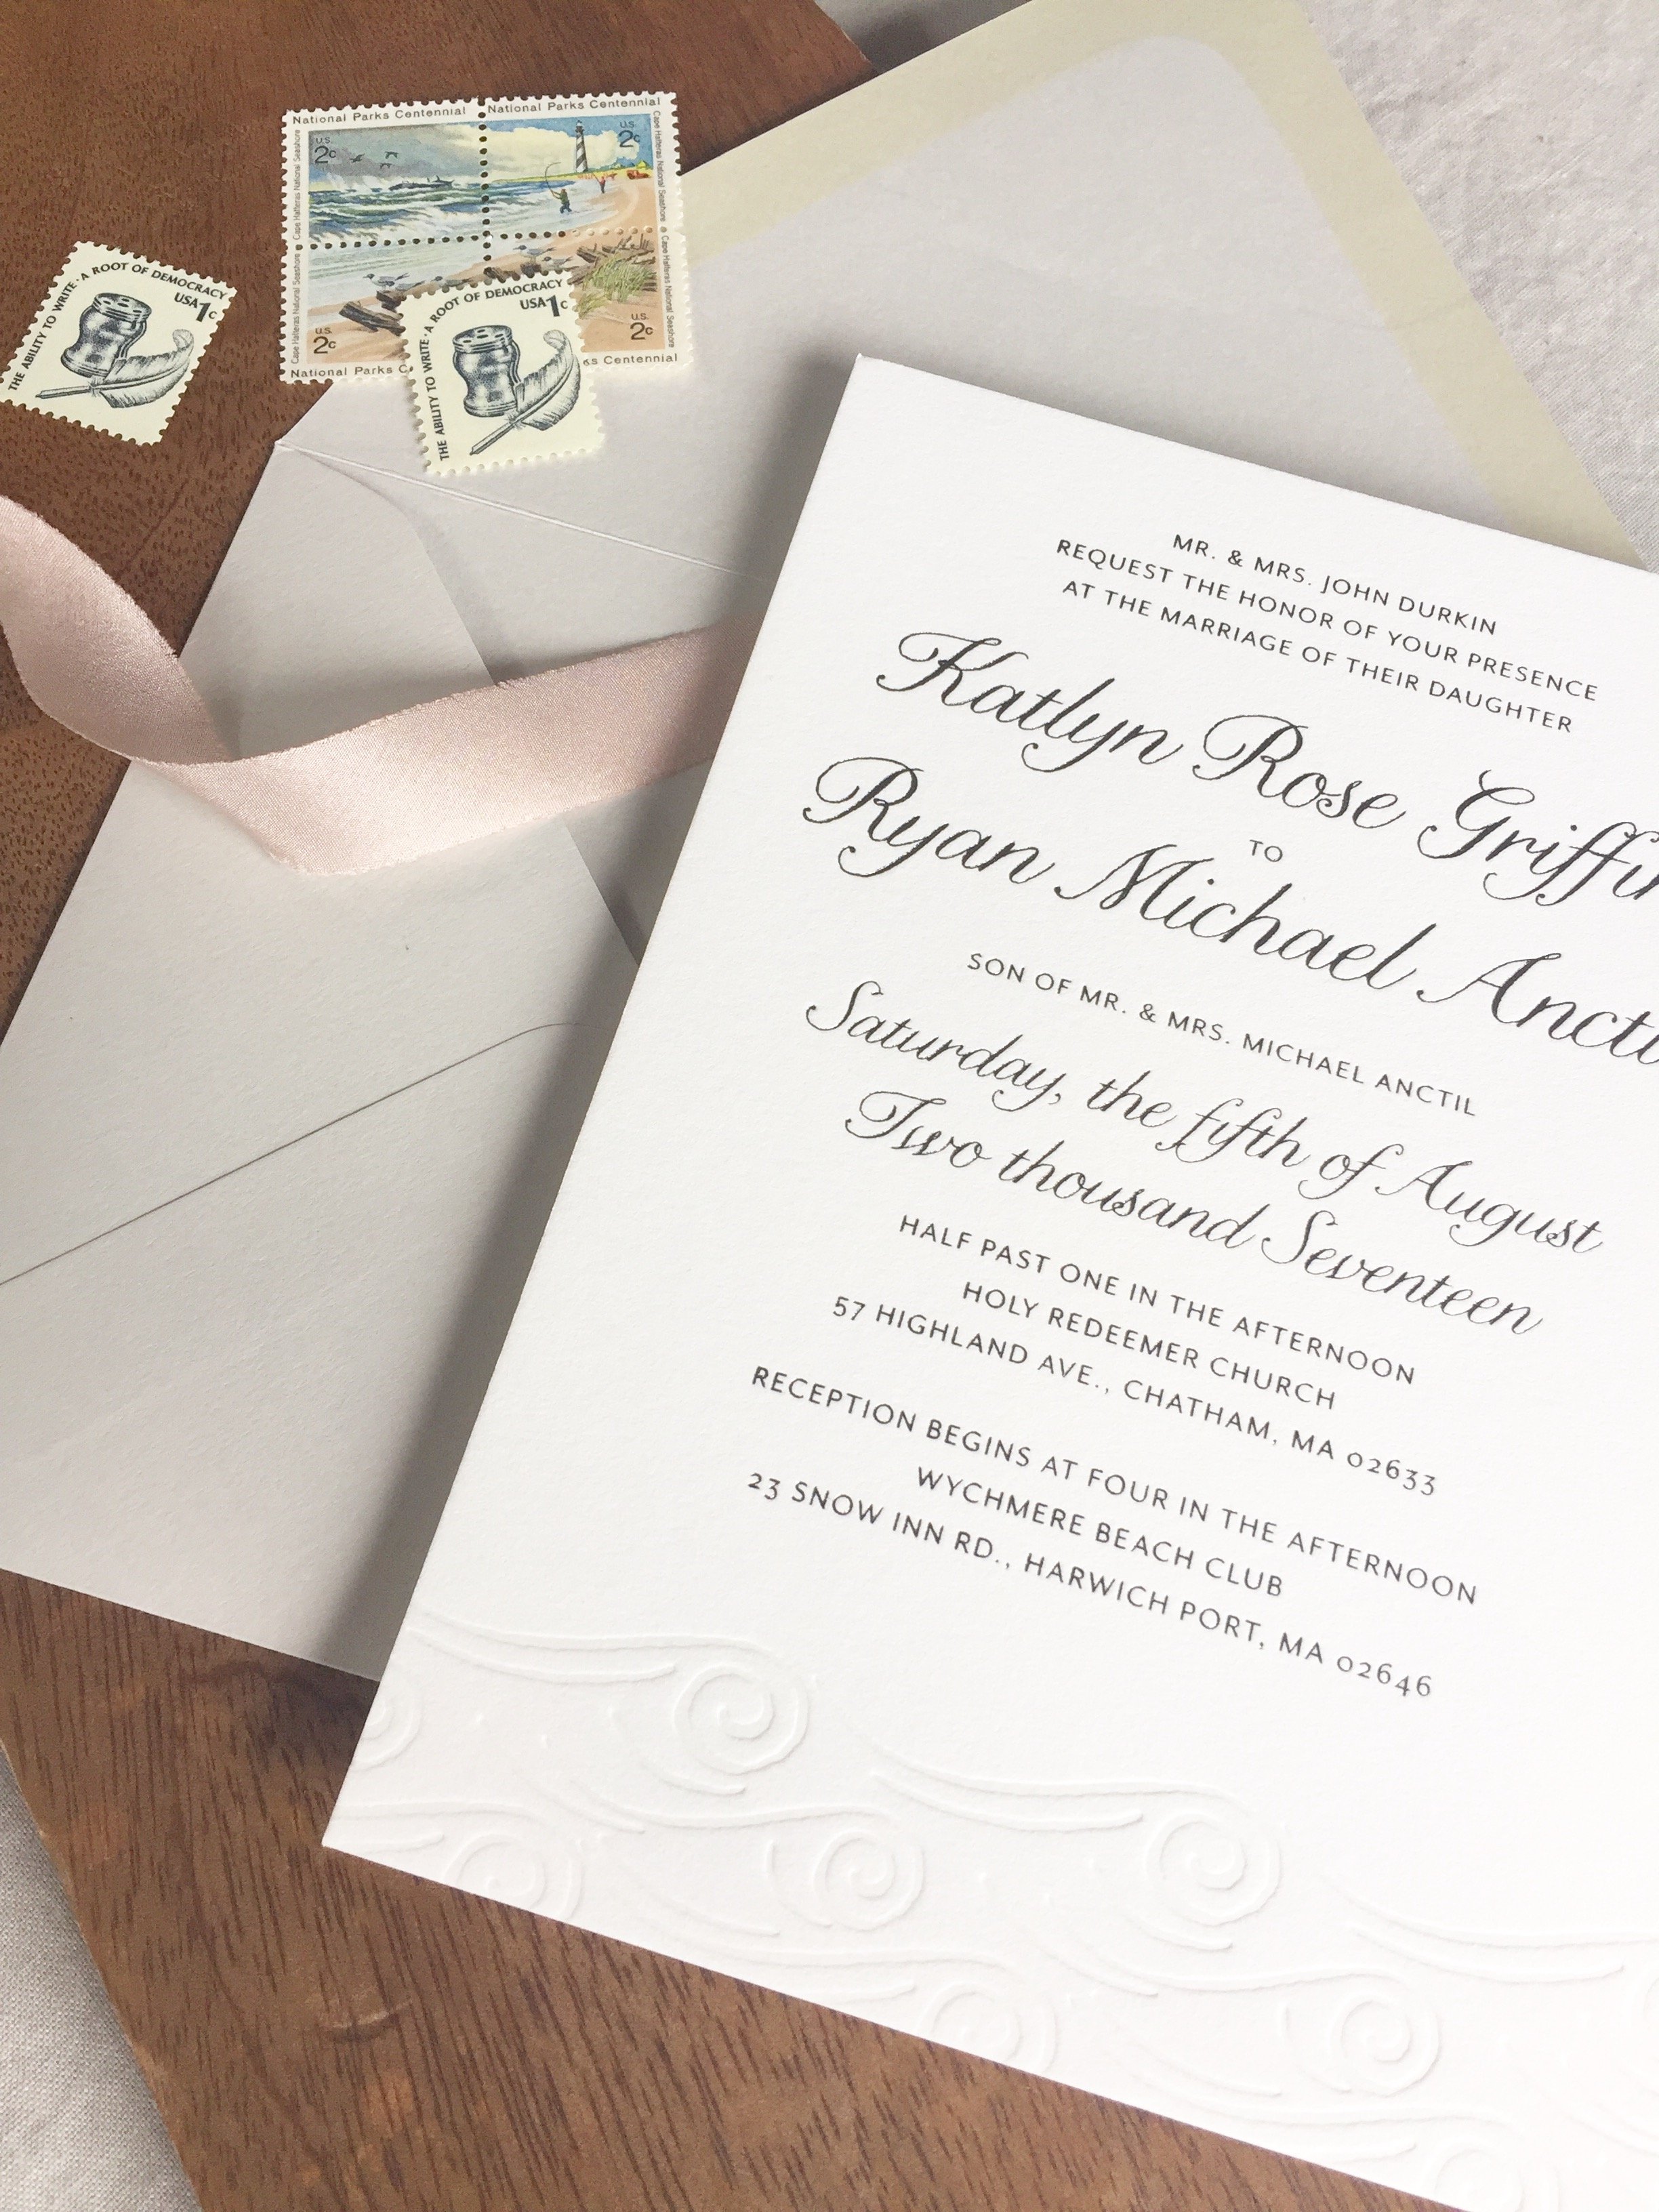 Maria_Bond_Design_Cape_Cod_Wedding_Invite_Katlyn_1.jpg